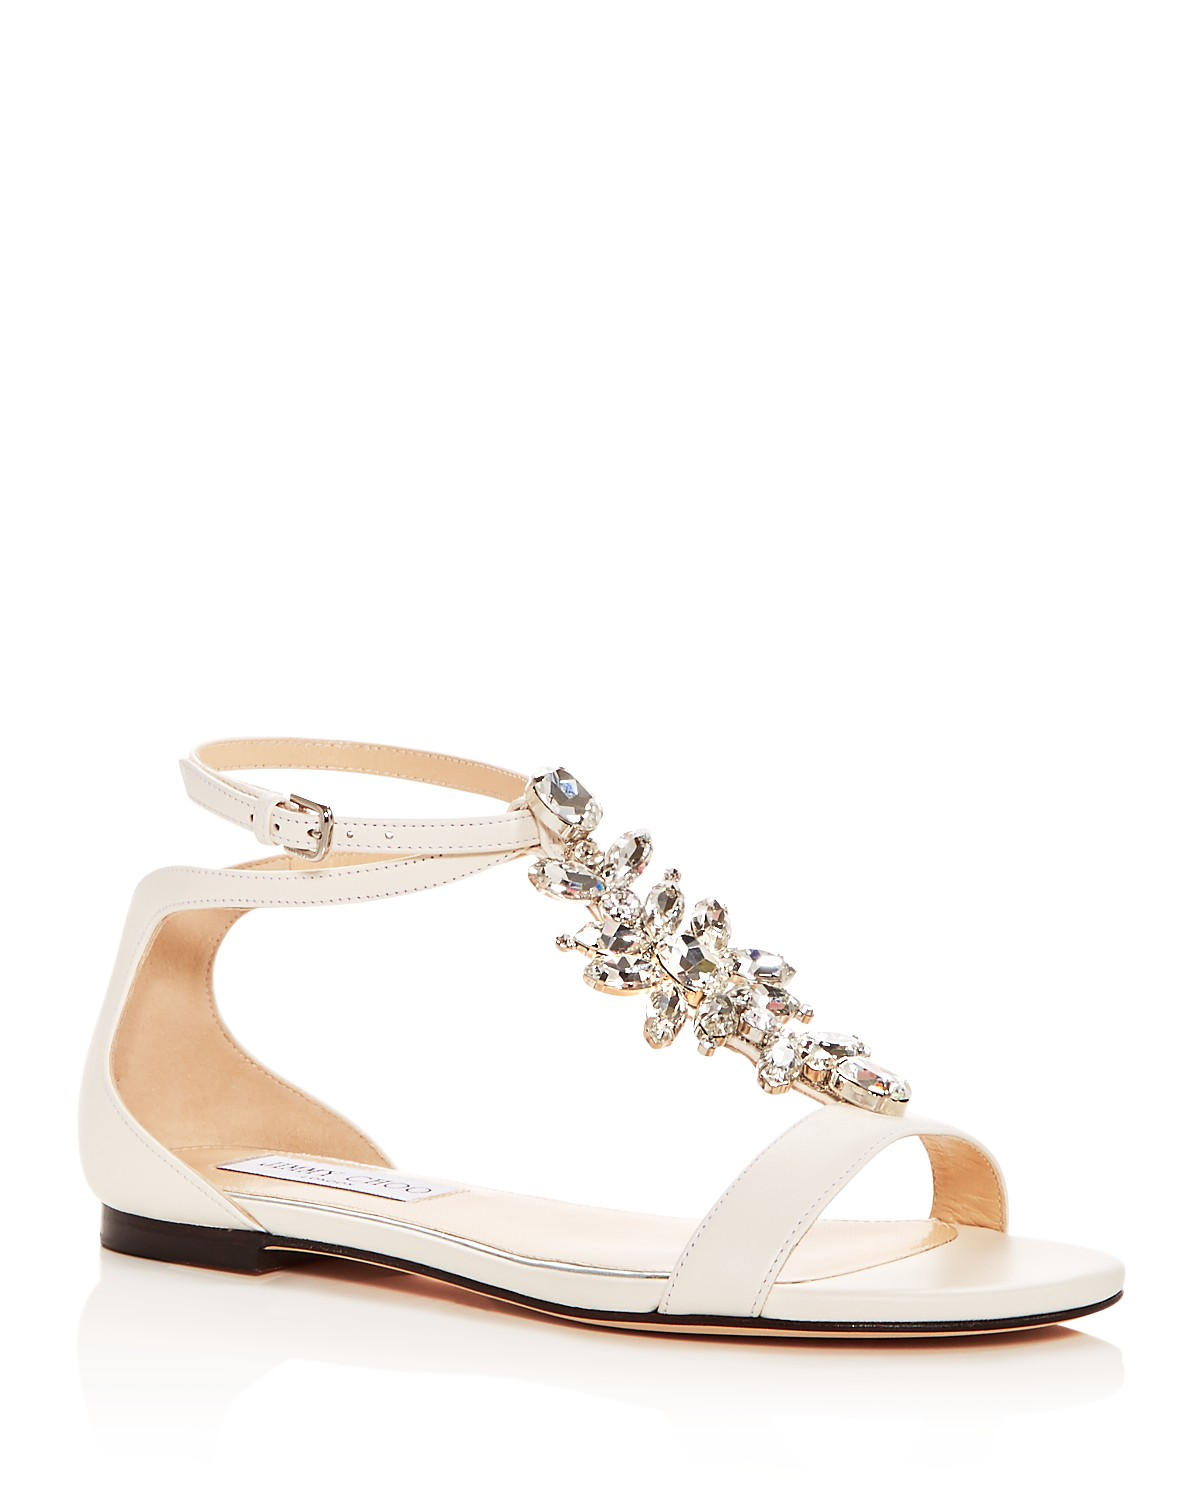 Jimmy choo Women's Averie Embellished Leather T-Strap Sandals ILDzcJWbv